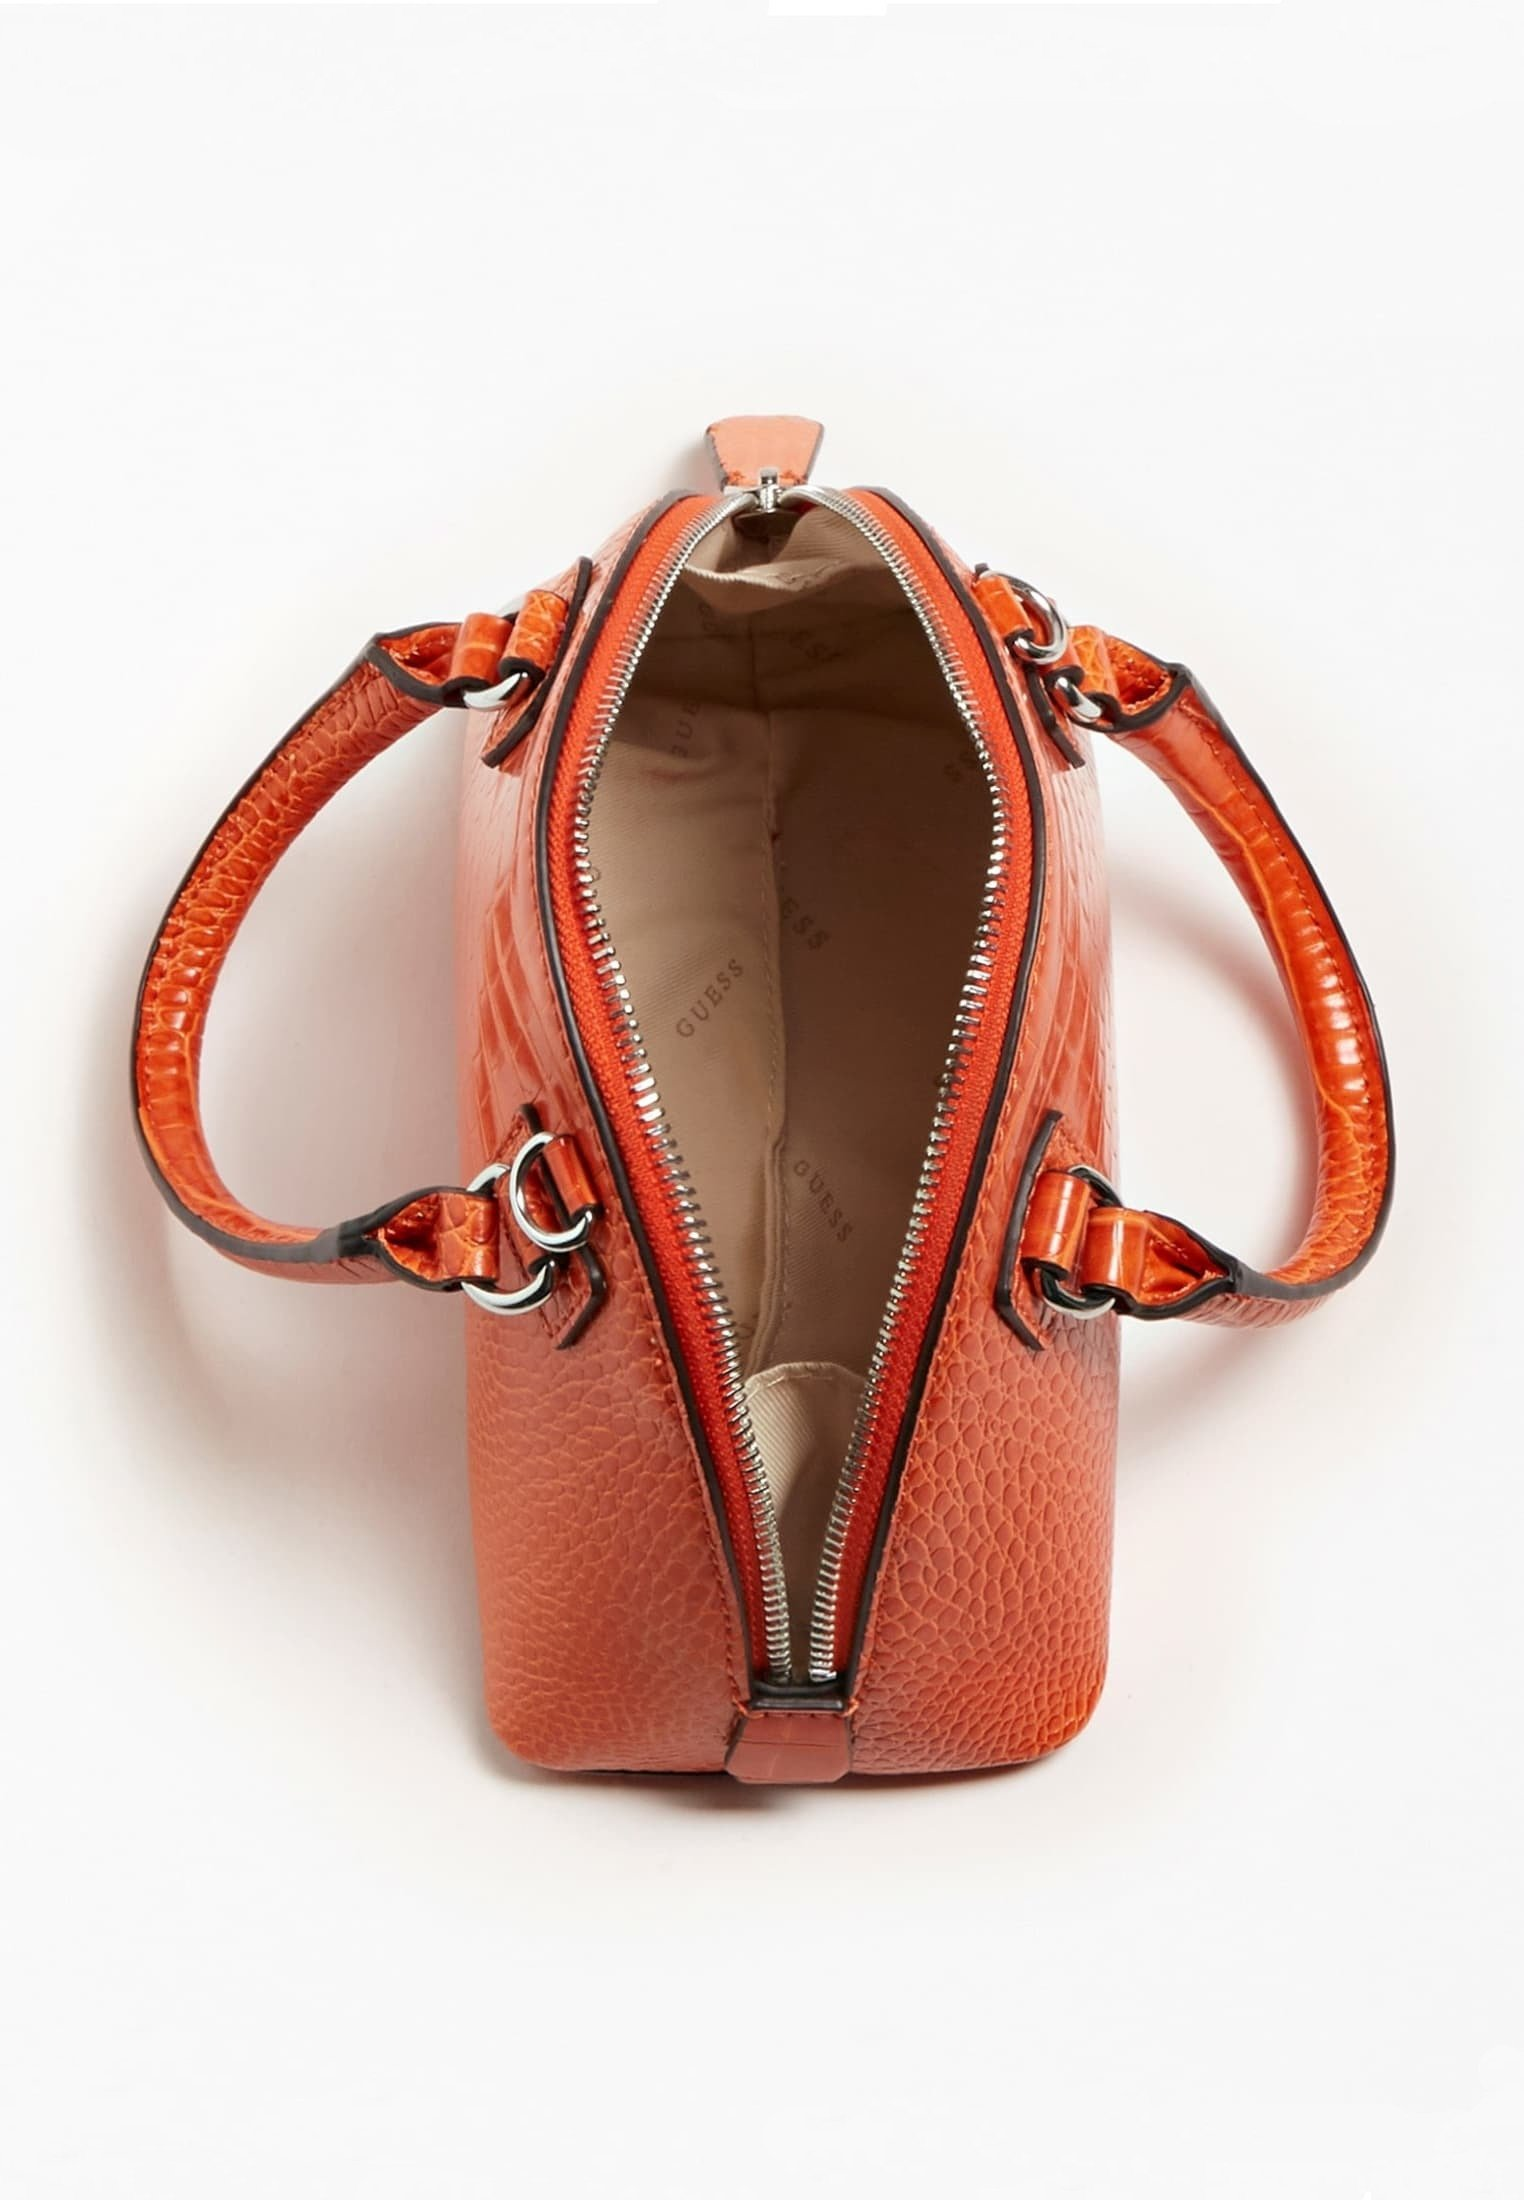 Guess Handtasche - Orange